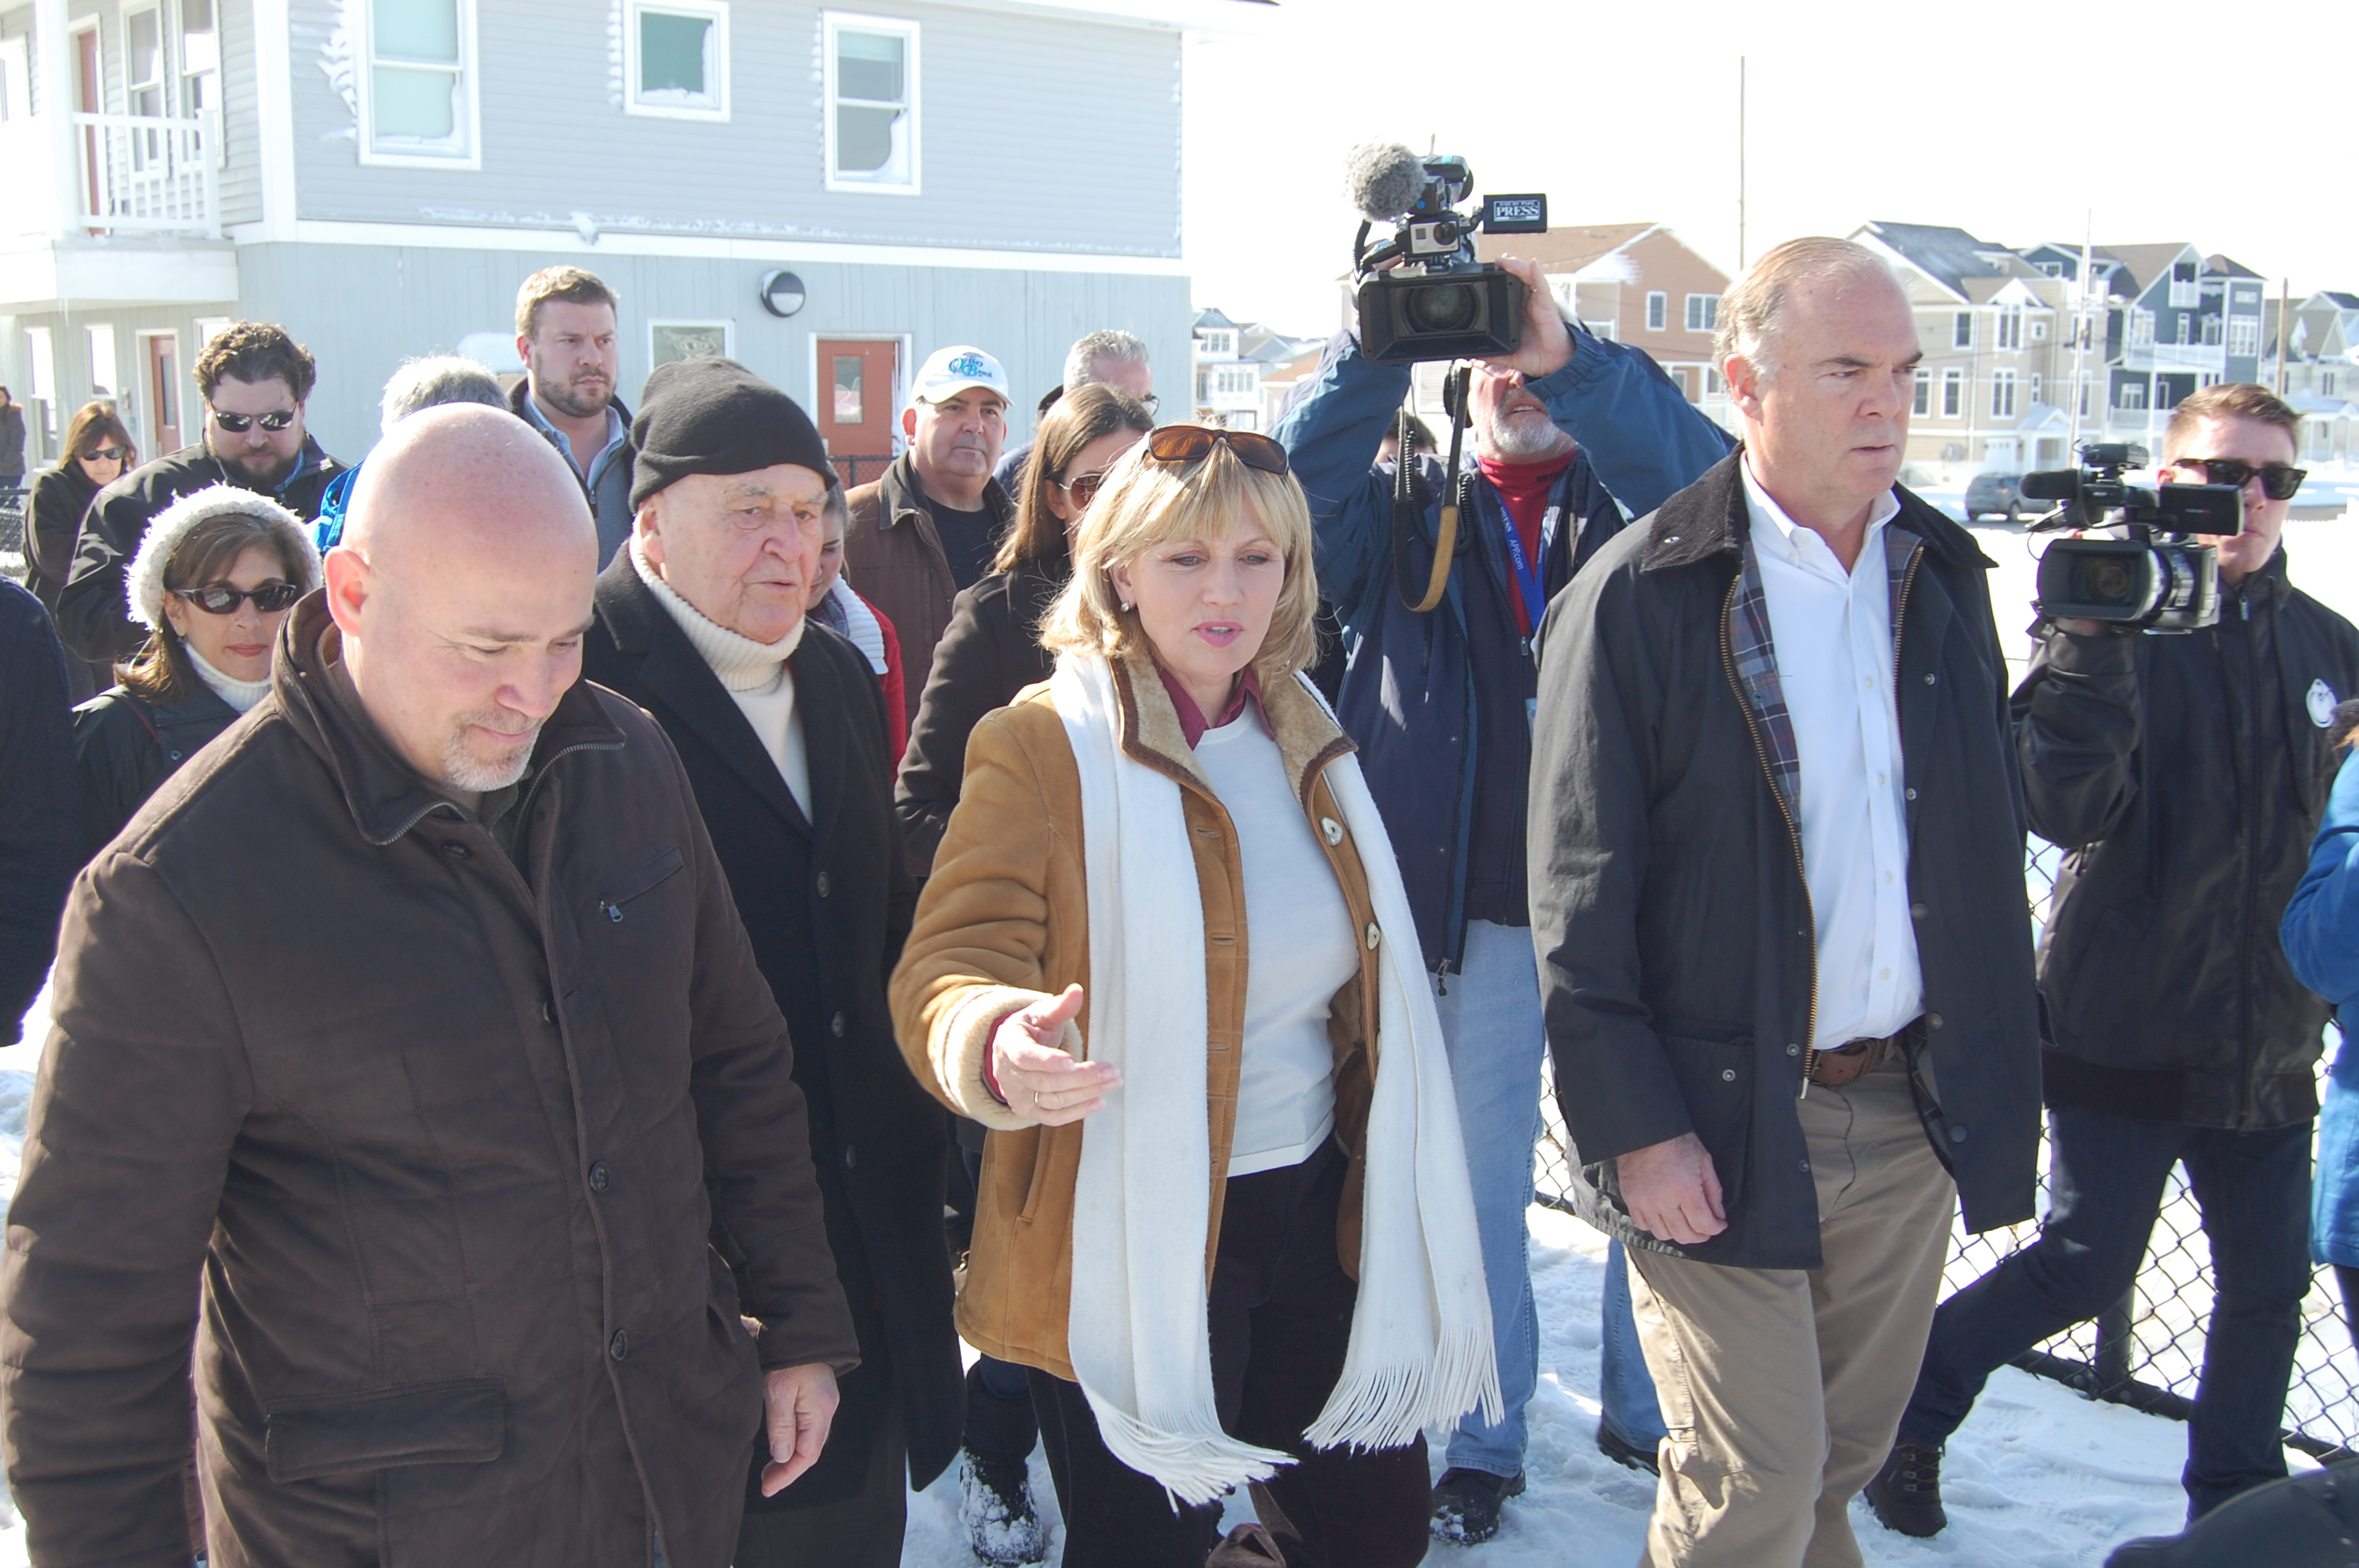 U.S. Rep. Tom MacArthur, Toms River Mayor Thomas Kelaher, Lt. Gov. Kim Guadagno and DEP Commissioner Bob Martin tour the Ortley Beach boardwalk, Jan. 25, 2016. (Photo: Daniel Nee)